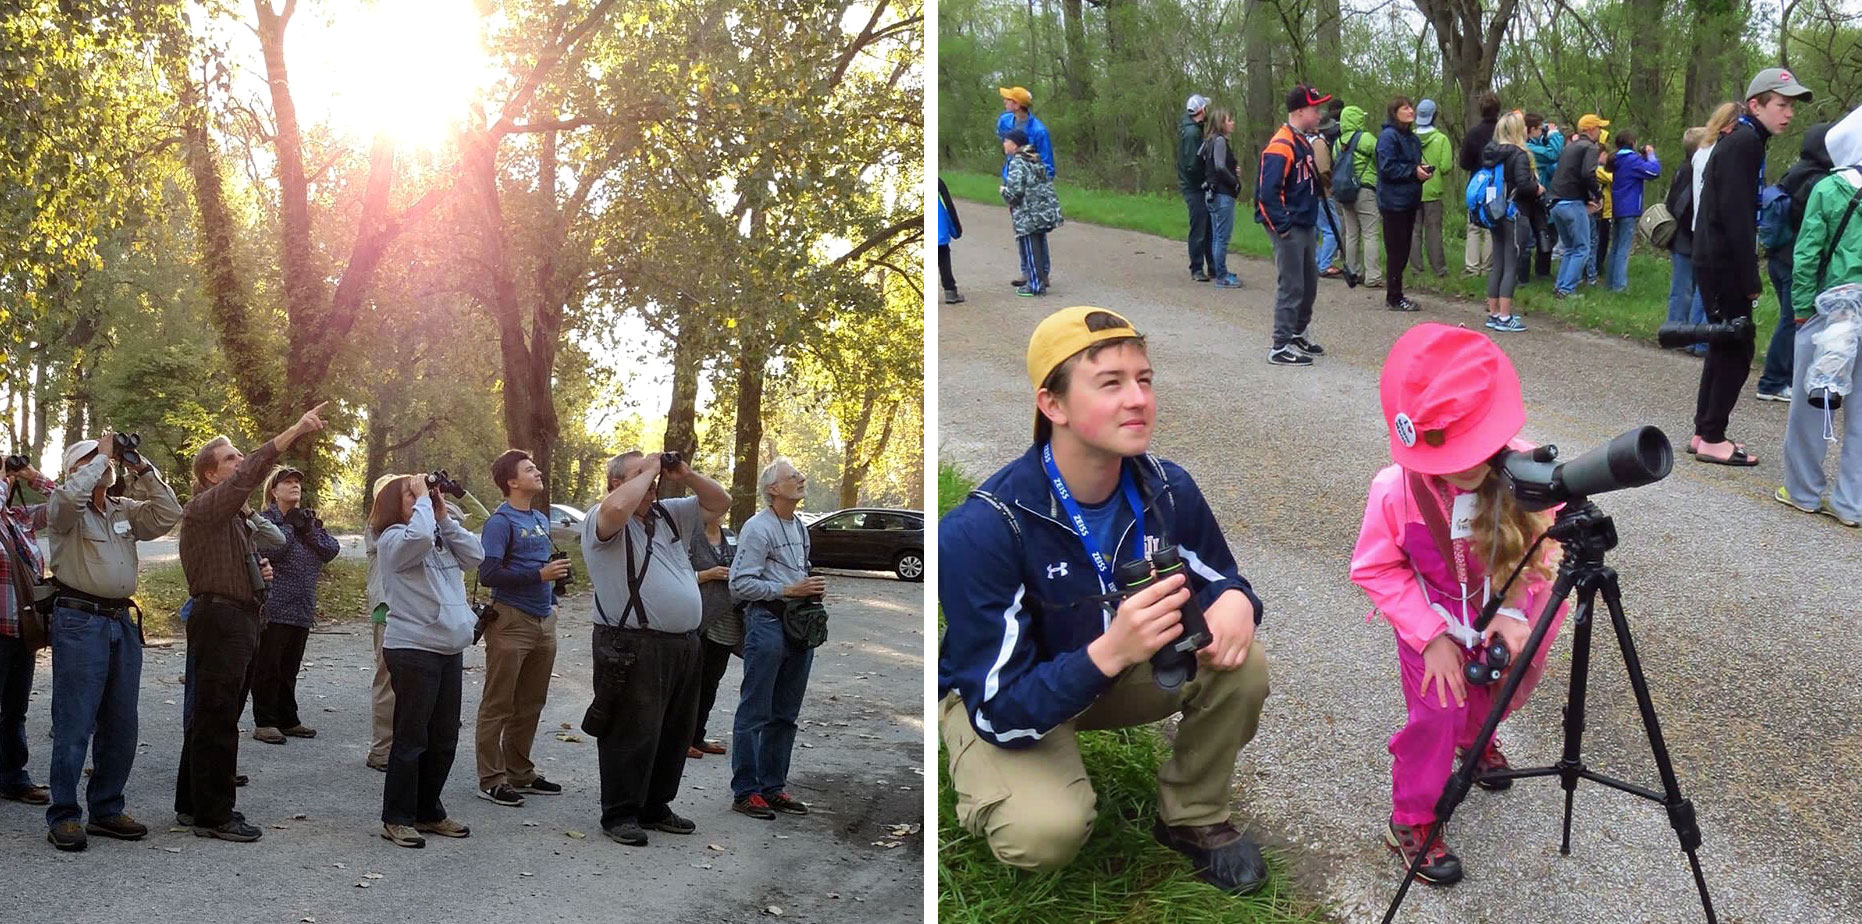 From left: Bird expert Kenn Kaufman, a mentor to the writer, leads him and a group of birders on a walk at Magee Marsh, Ohio; The writer helps a fledgling birder use a spotting scope on the same walk. Photos: Kim Kaufman